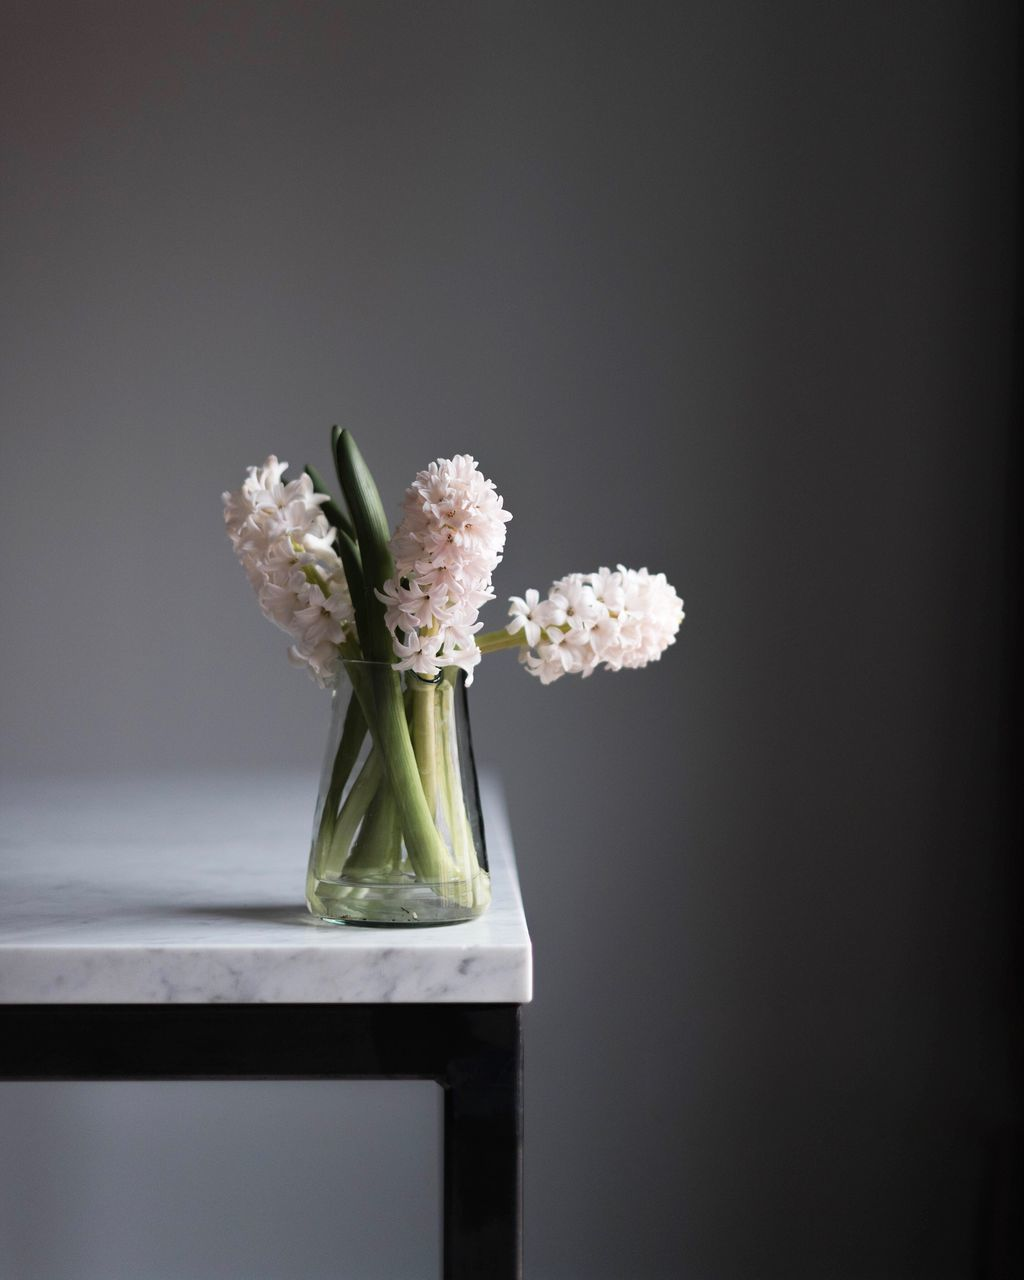 flower, vase, still life, white color, bouquet, no people, table, indoors, studio shot, flower head, freshness, home interior, close-up, fragility, nature, day